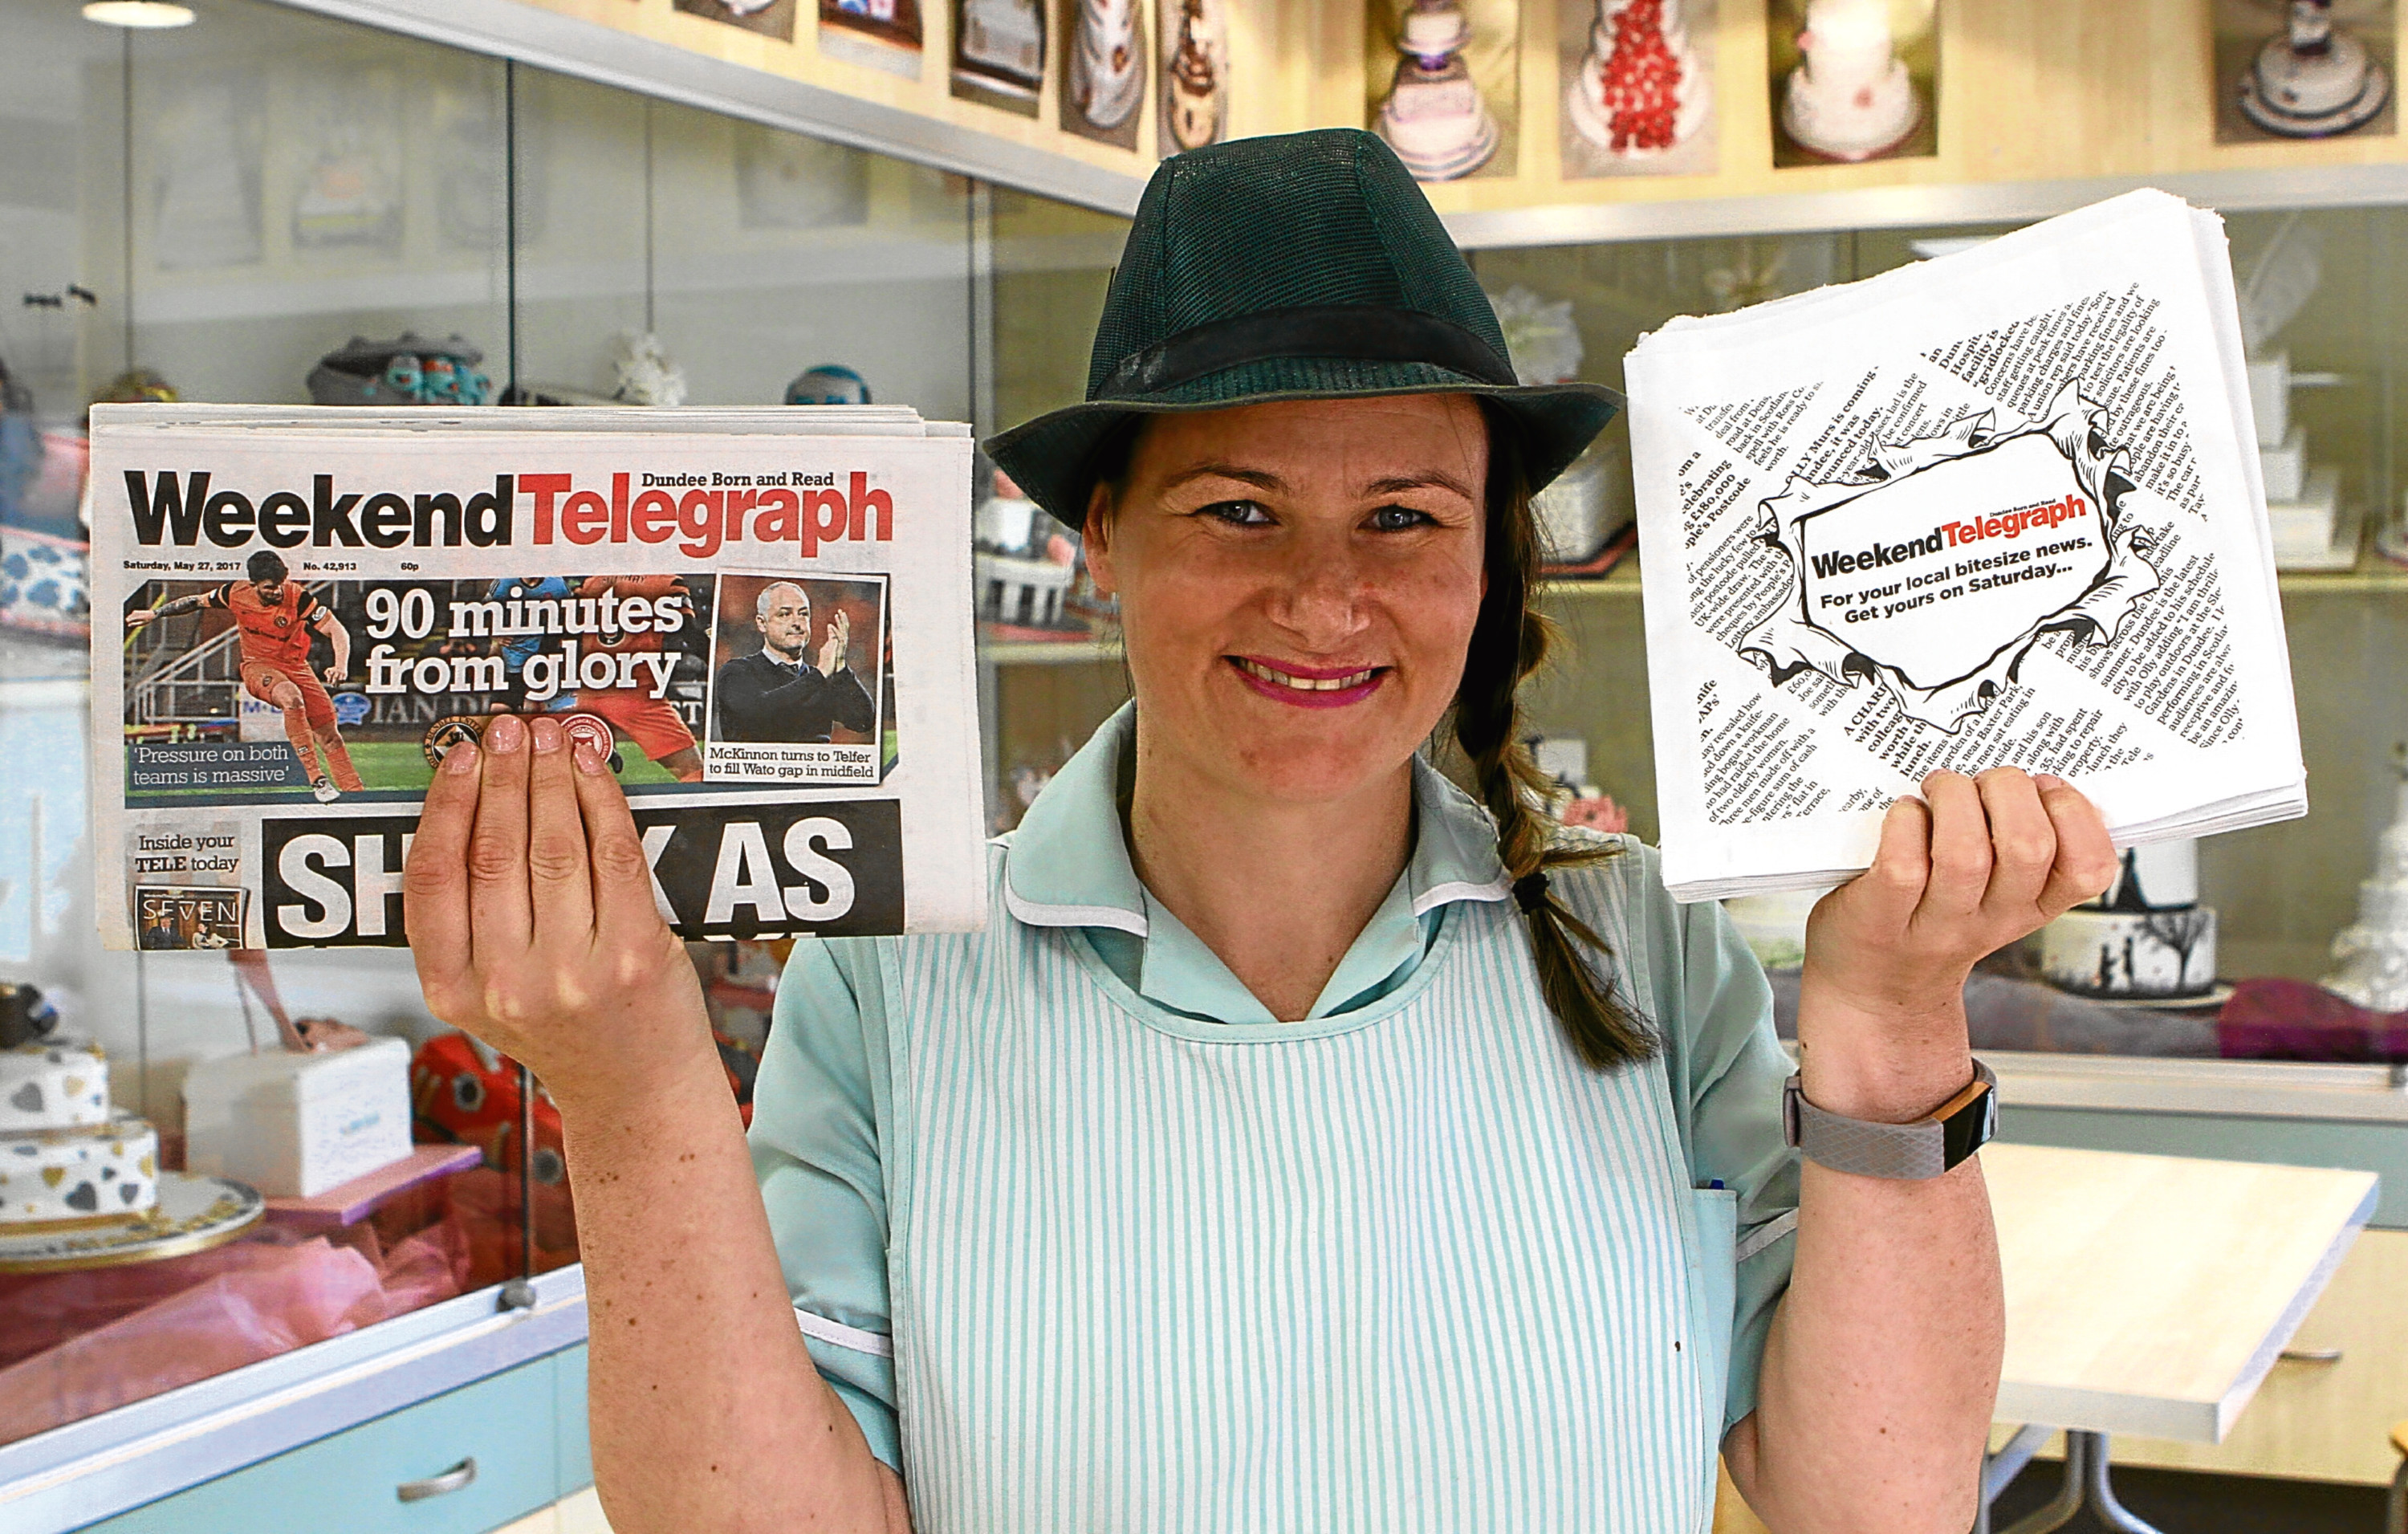 Tele News - Dundee story - Weekend Tele paper bags - Dundee. Picture shows; Kerry - Ann Scott, Manager,with the Weekend Tele paper bag at Nicoll's Rosebank Bakery today. Tuesday 30th May 2017.